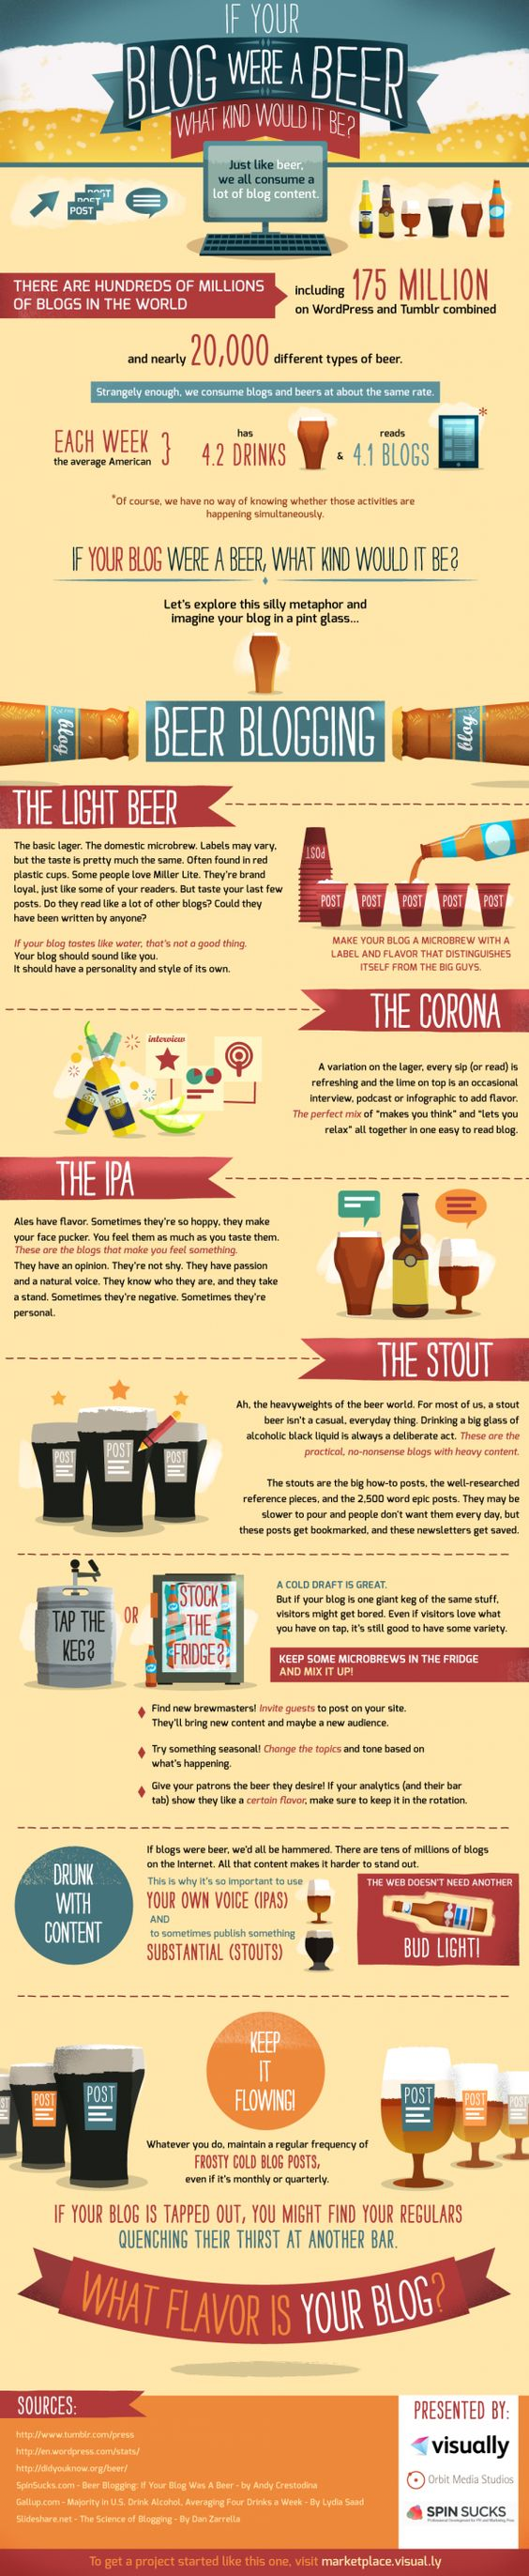 If Your Blog Were A Beer... [Infographic]